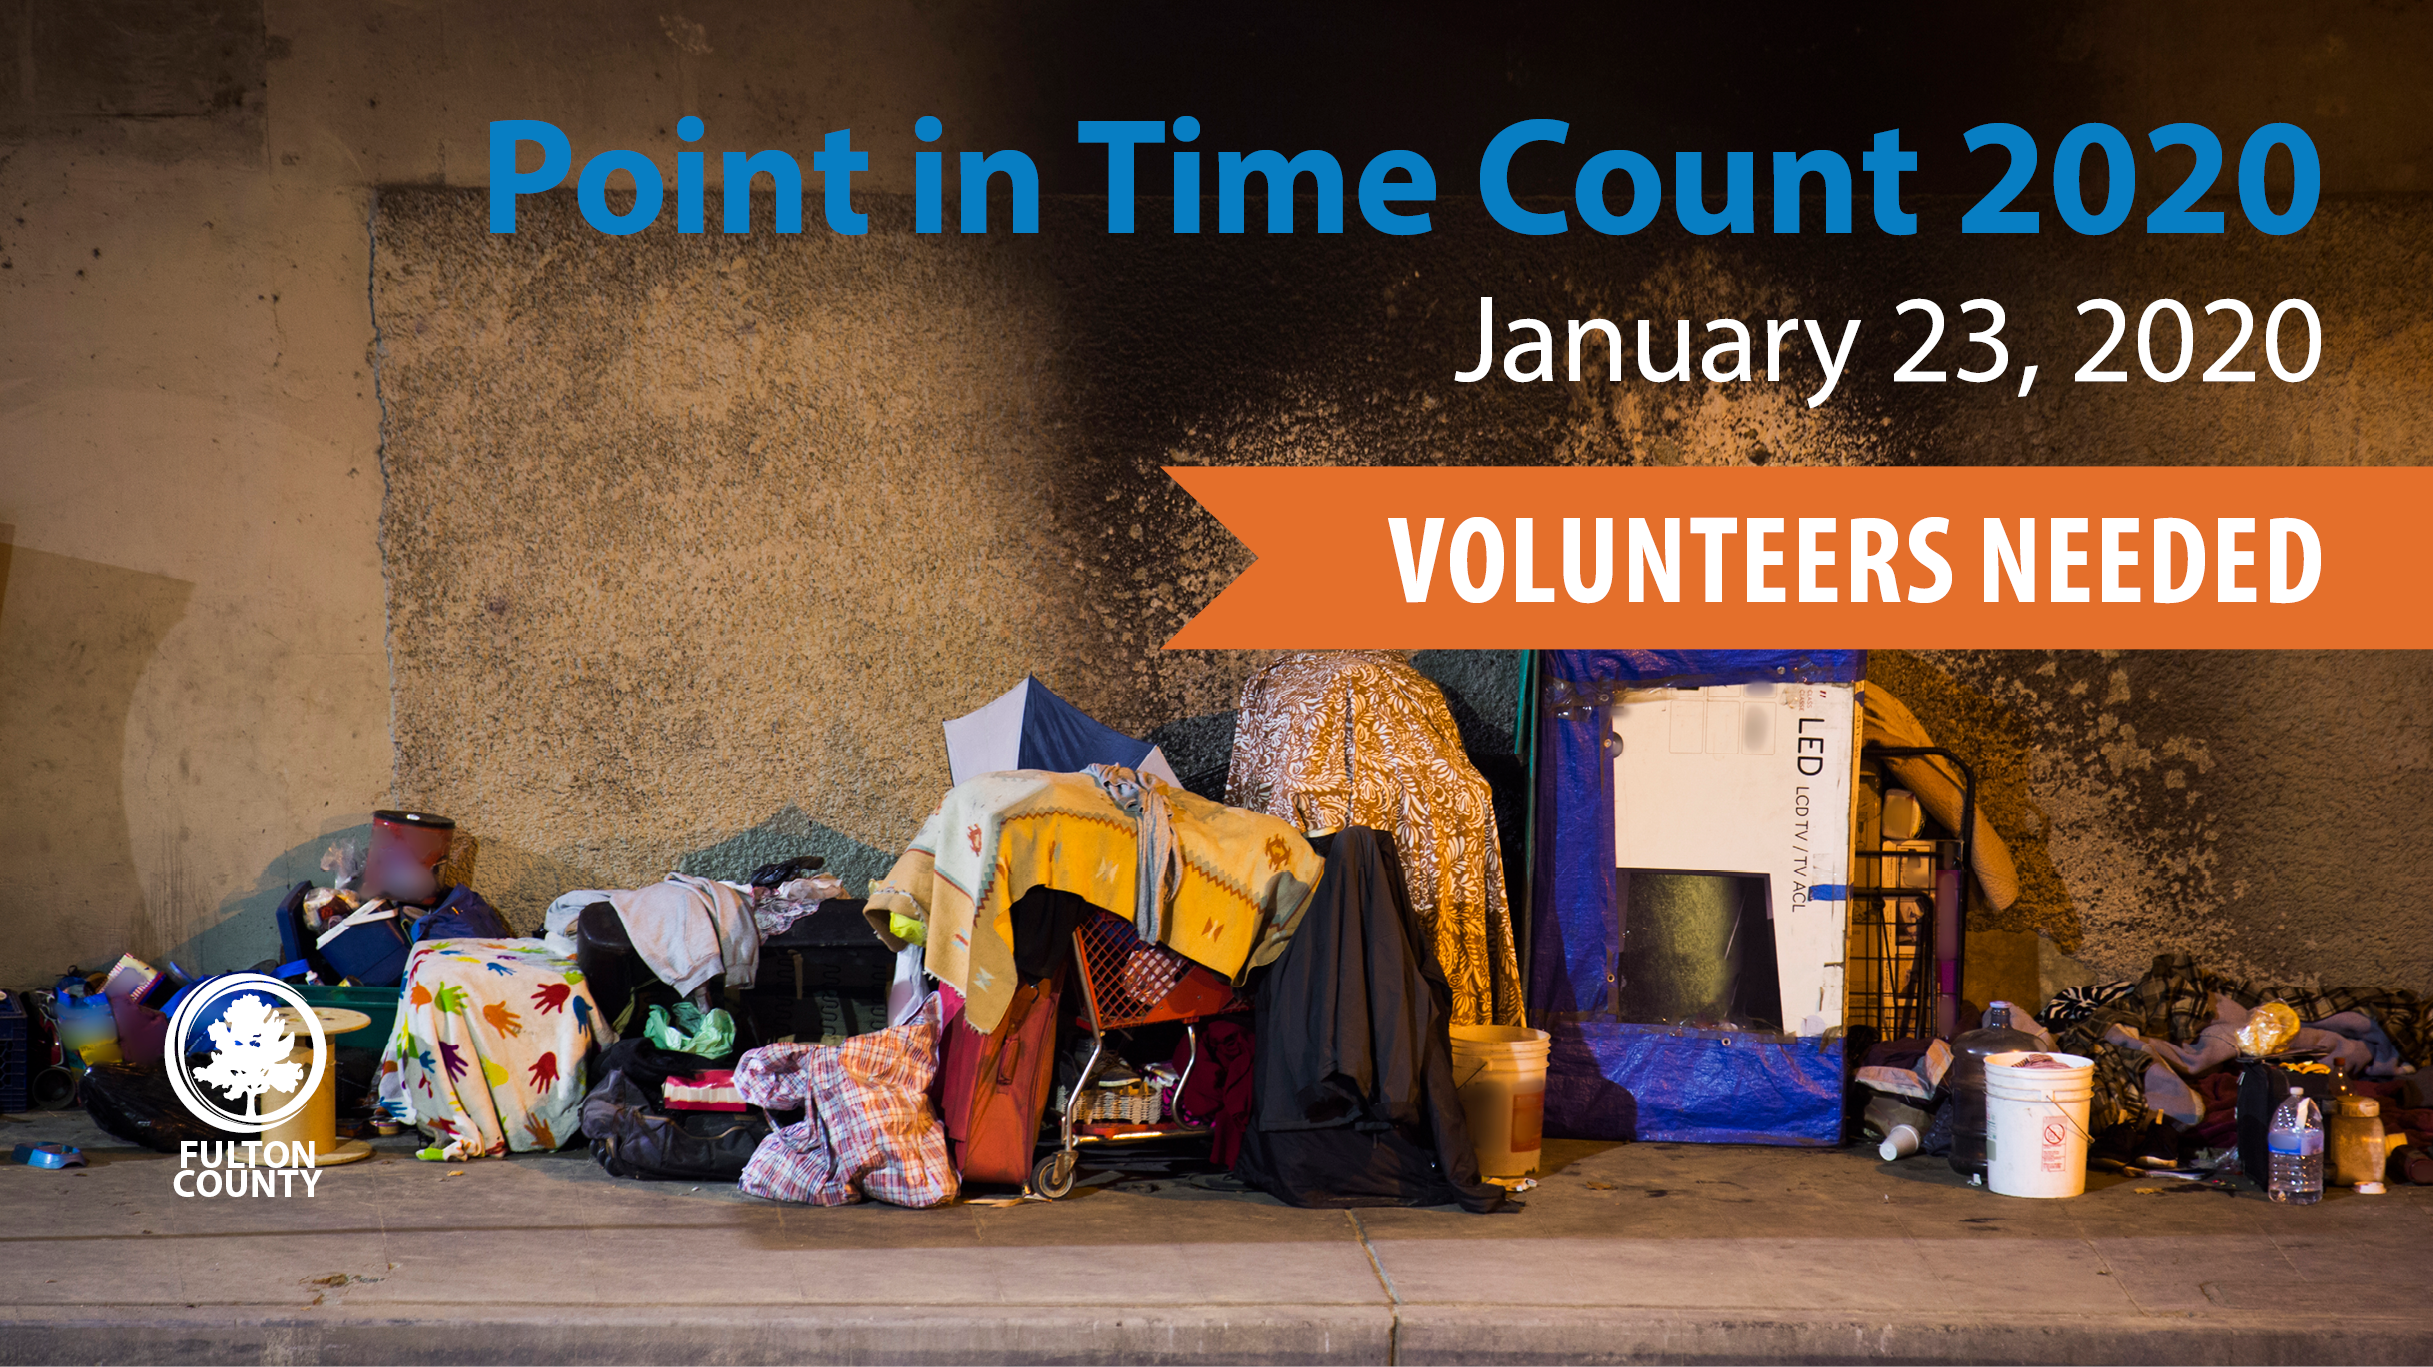 Point in Time Count volunteers needed Jan 22, 2020